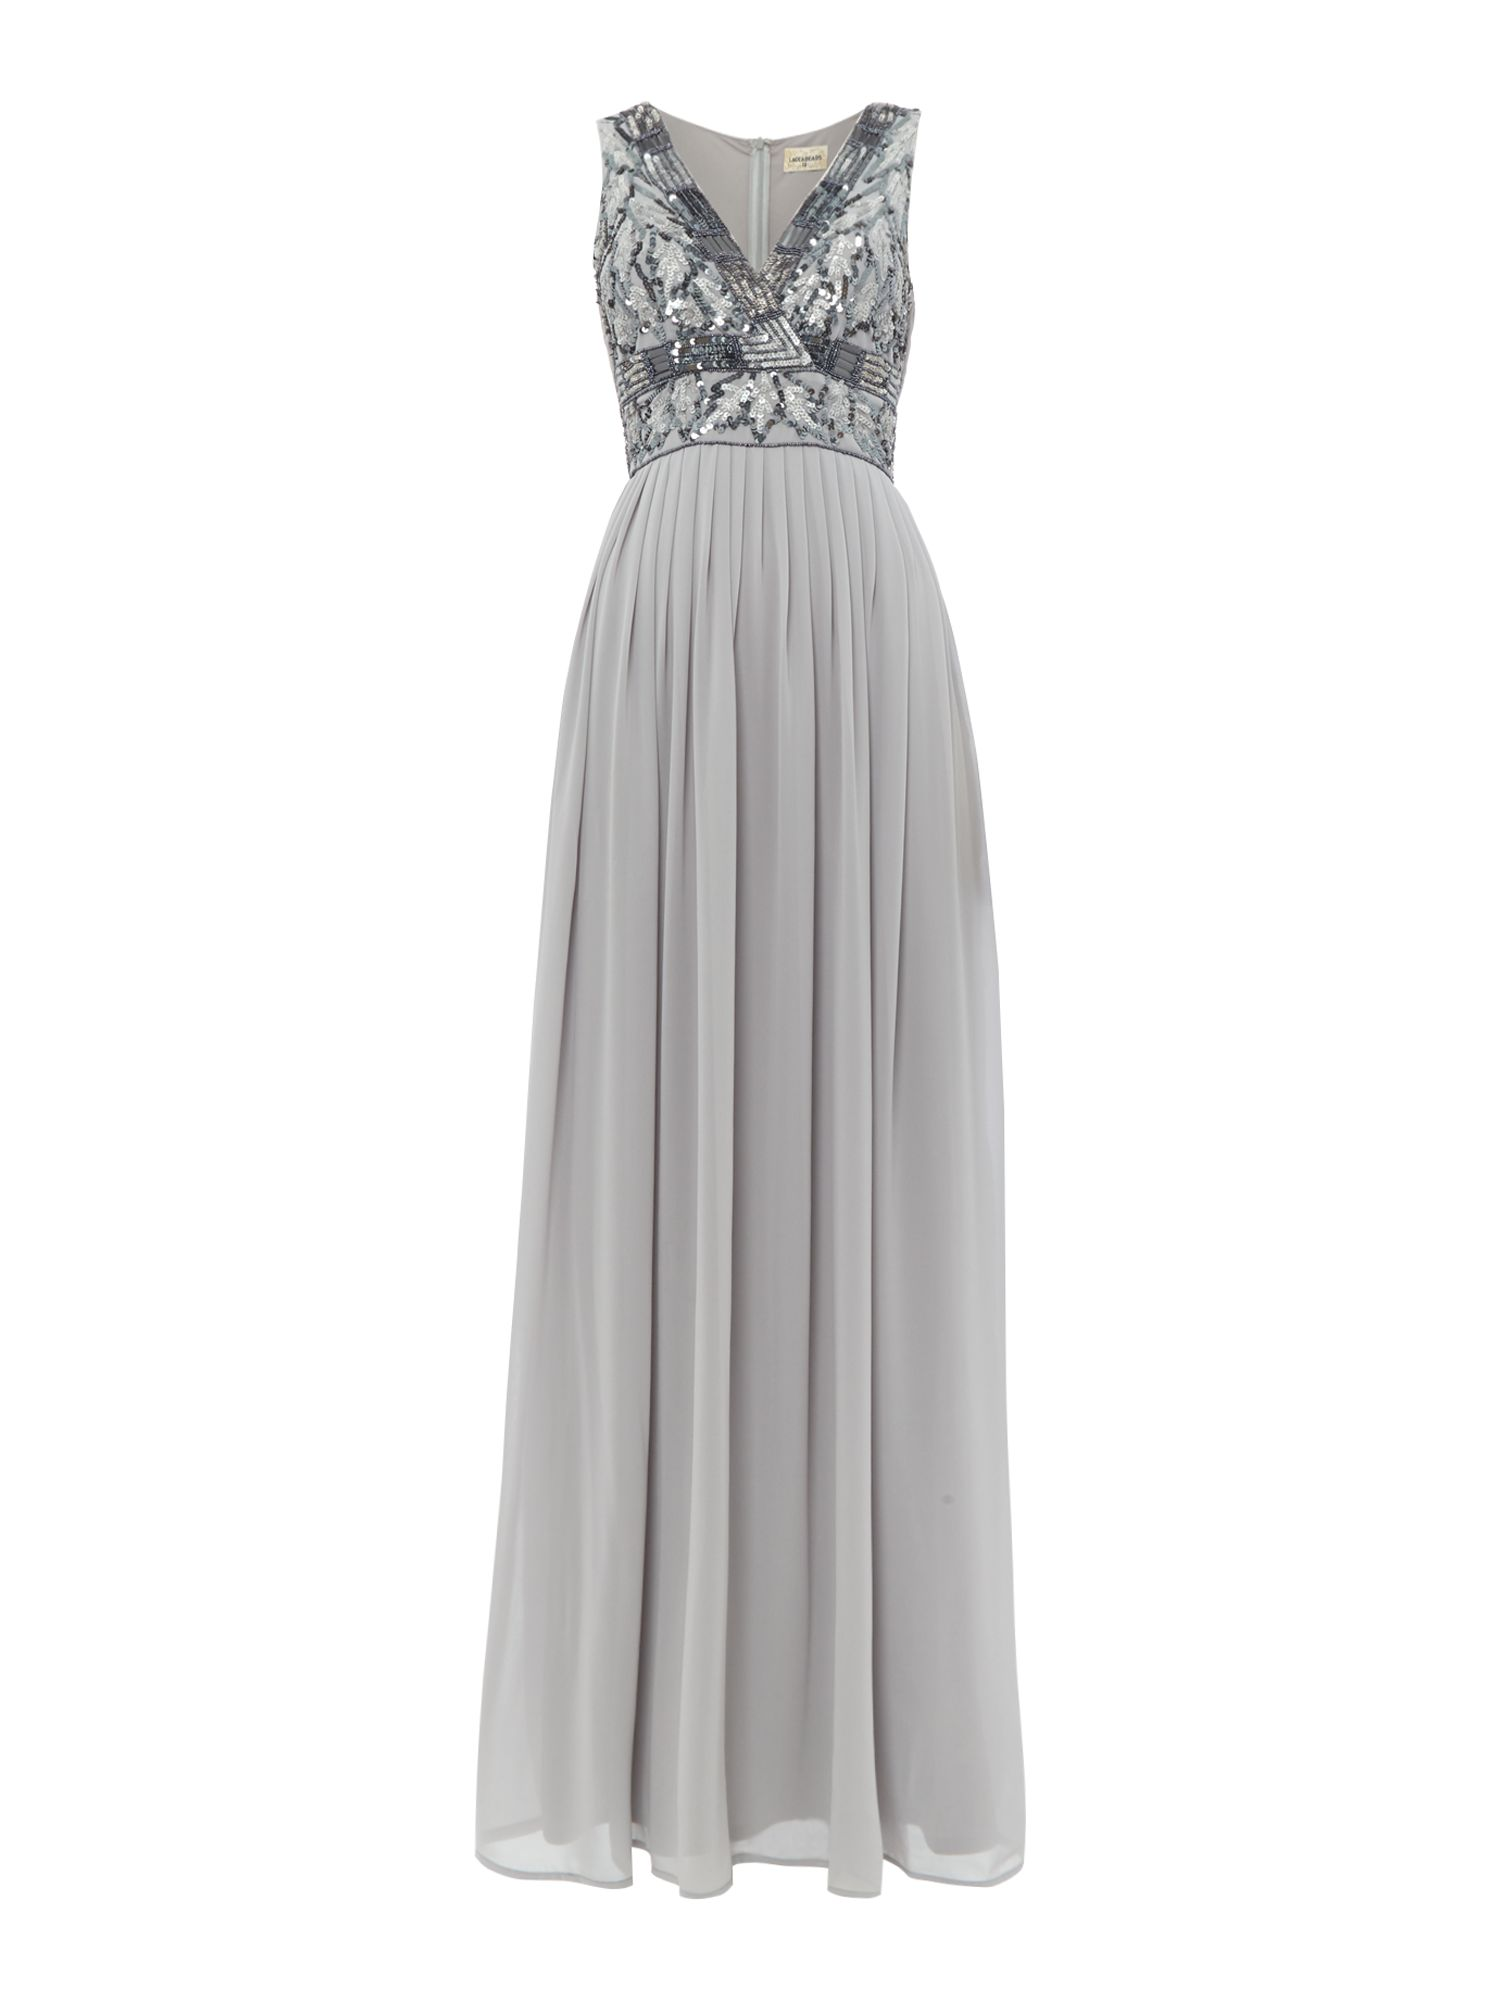 Lace and Beads Sleeveless V neck maxi dress, Grey